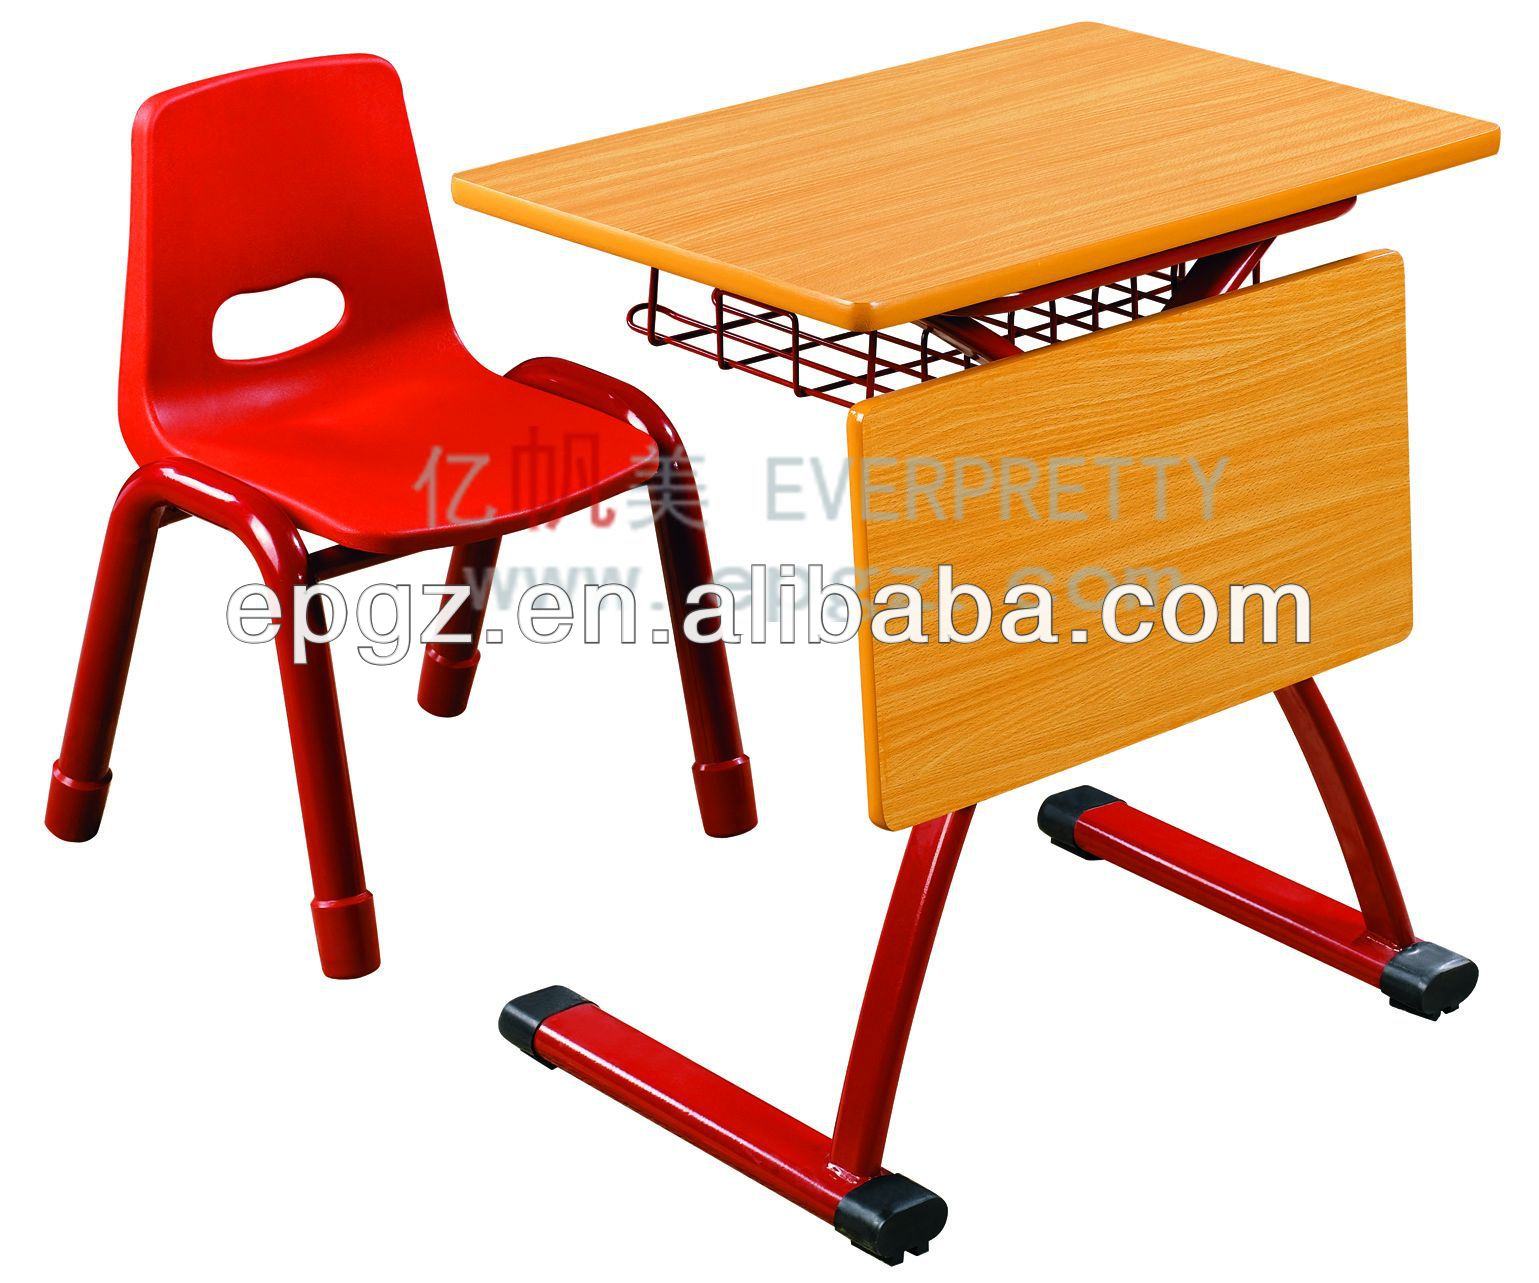 Vintage Childrens Table And Chairs Vintage Childrens Table And